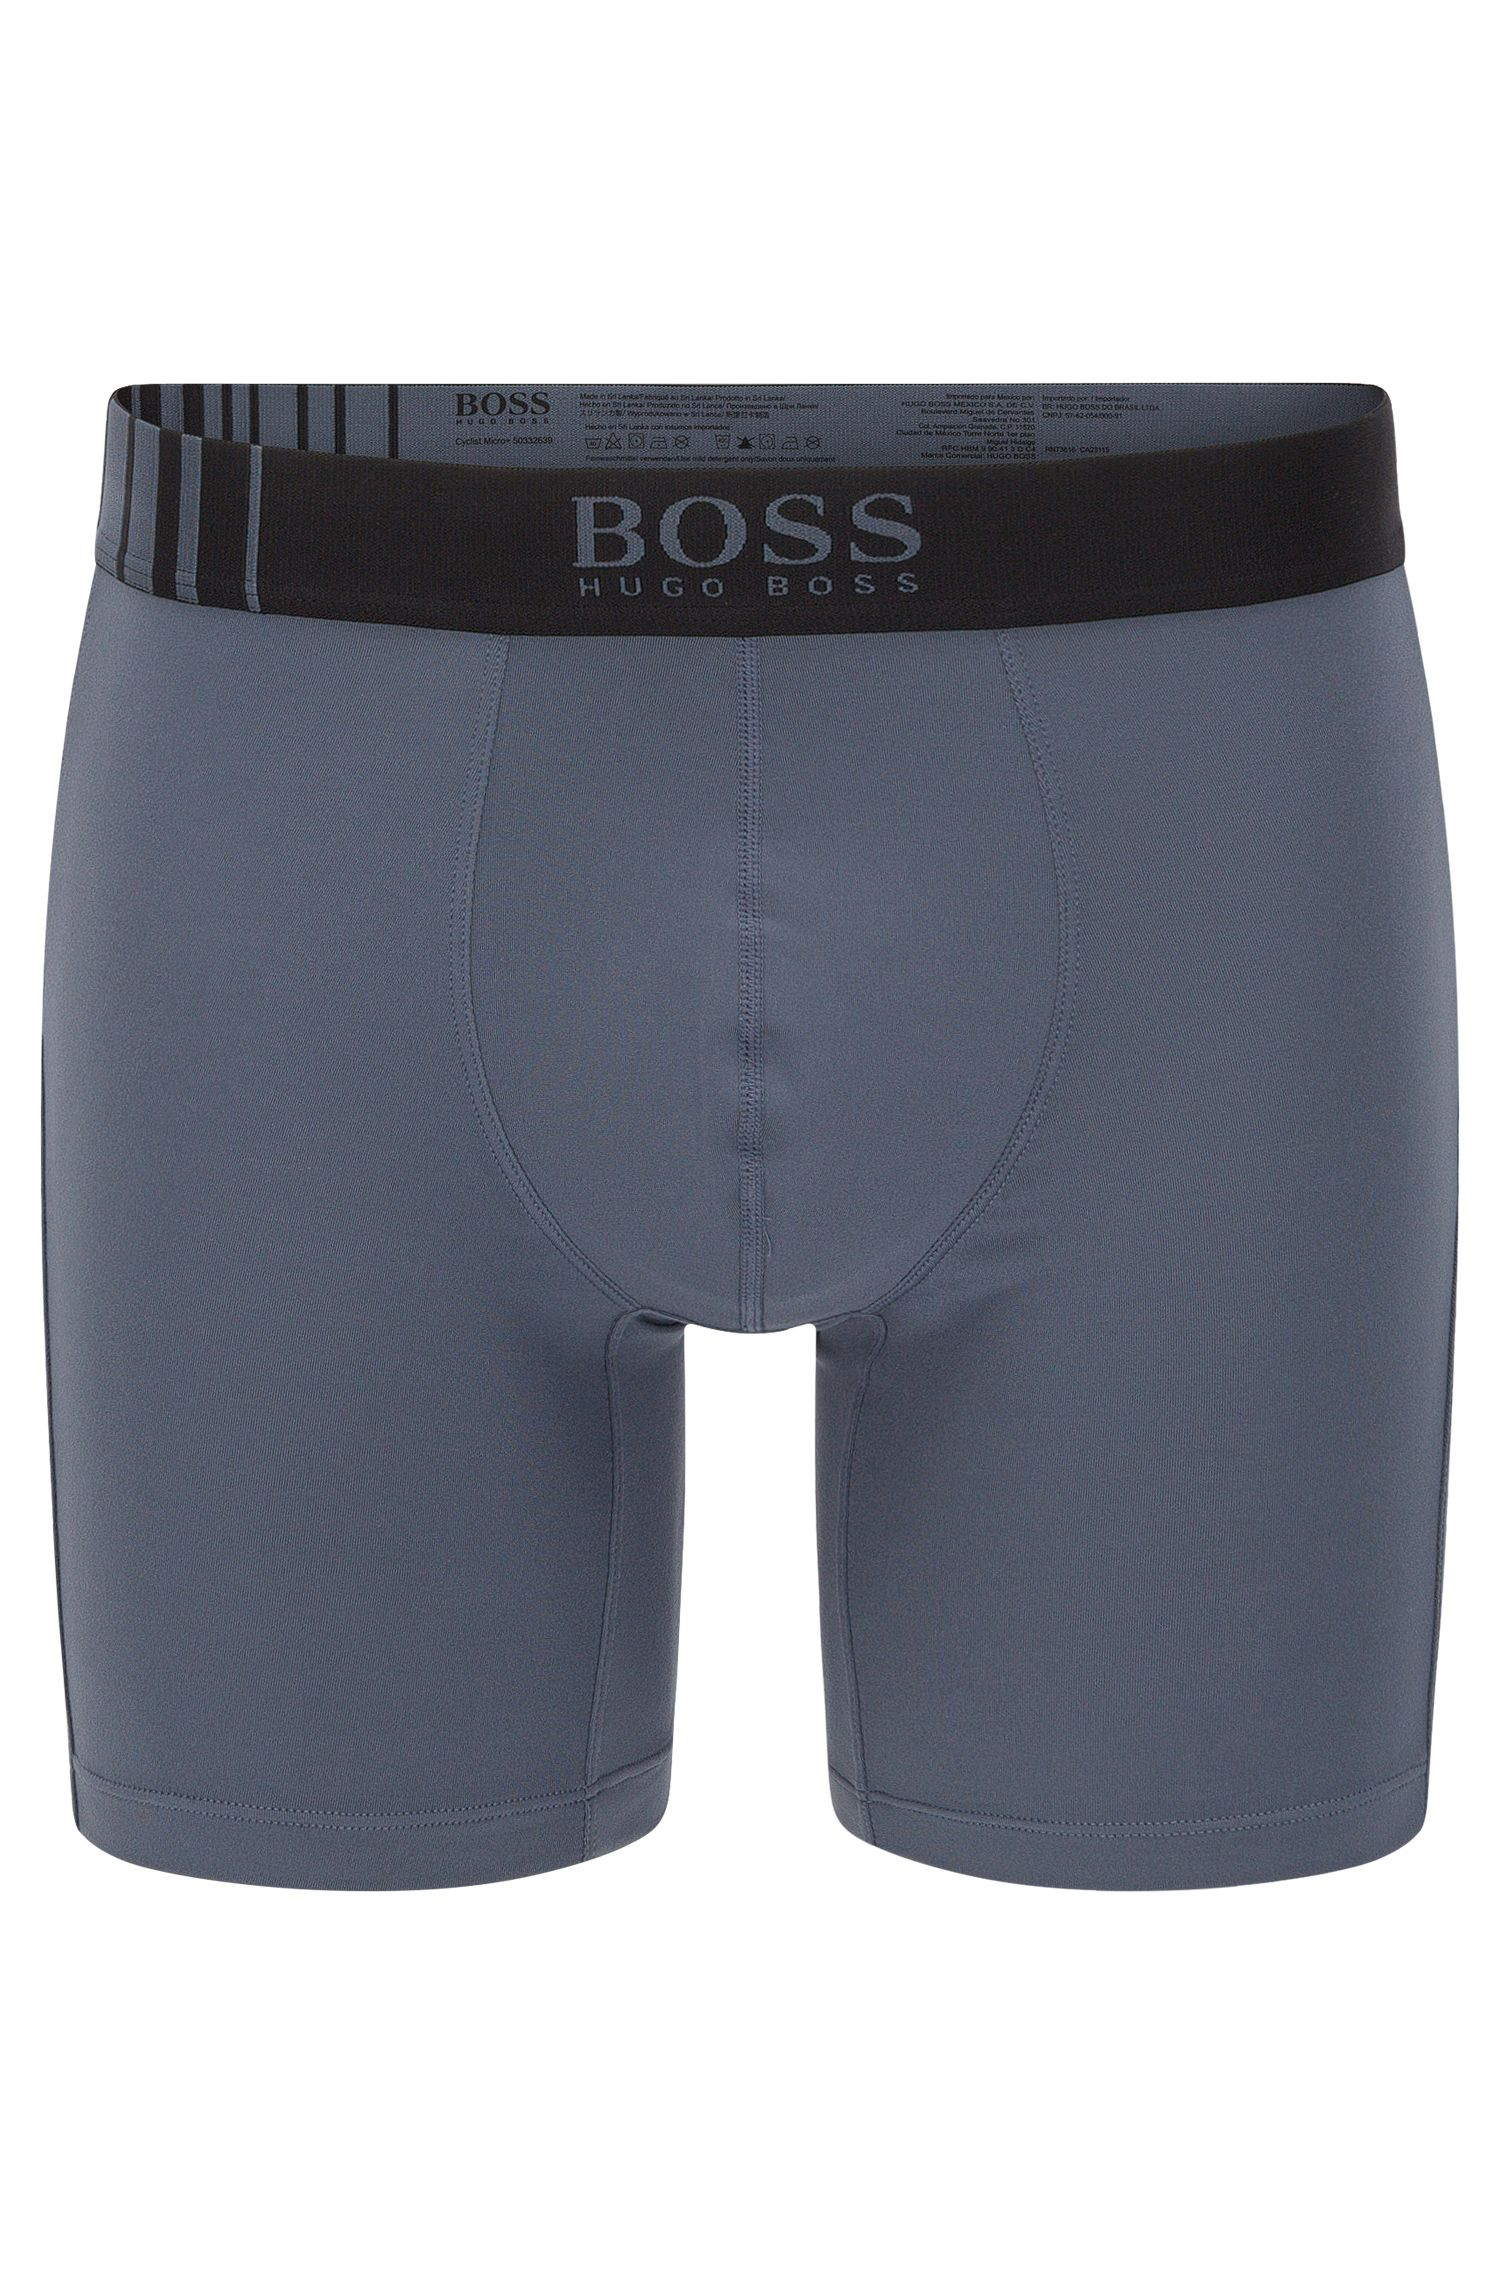 Boxer shorts with COOLMAX® technology